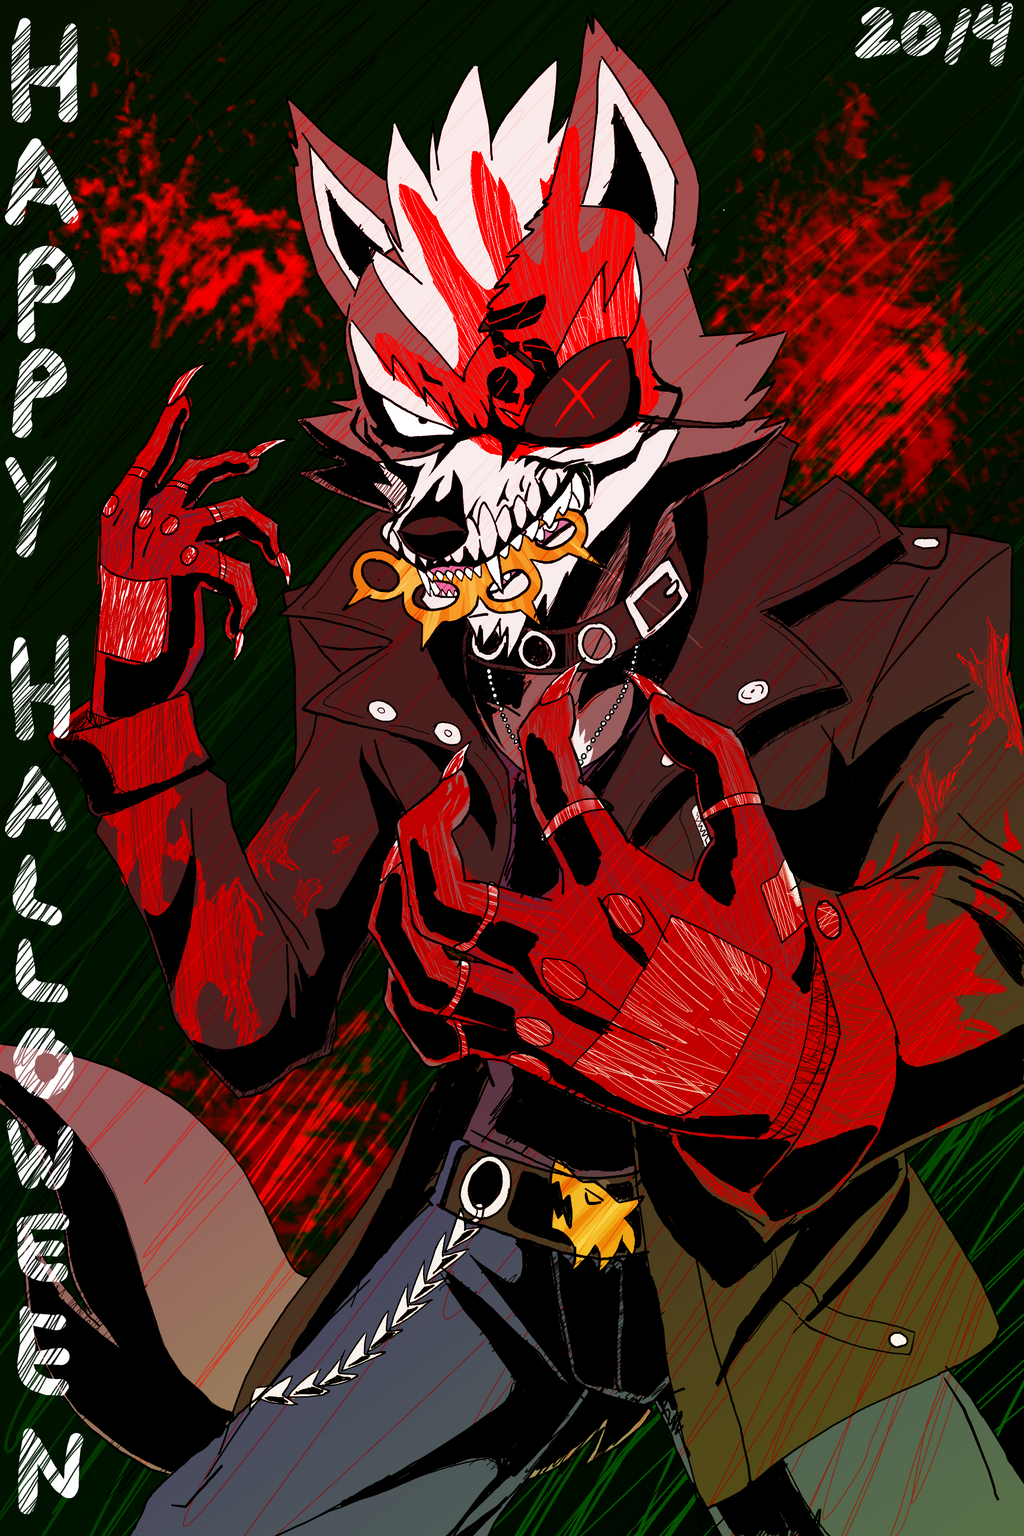 ffdp wolf halloween 2014 by vivianwolf18 on deviantart